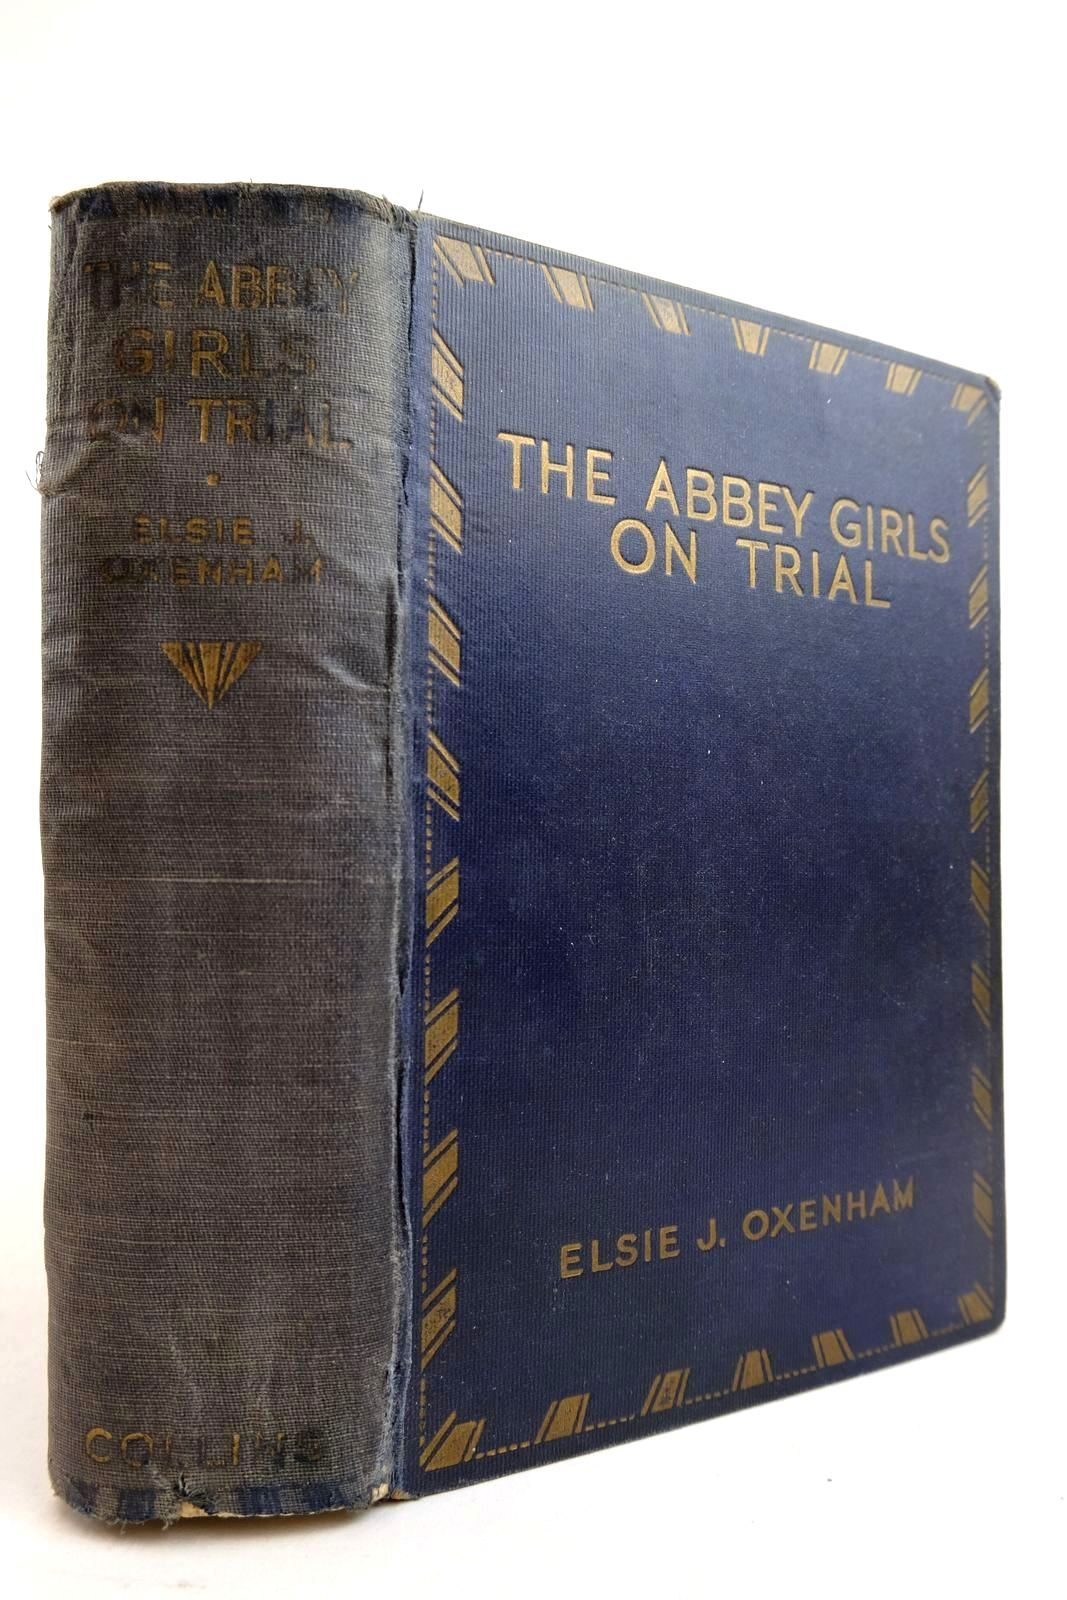 Photo of THE ABBEY GIRLS ON TRIAL- Stock Number: 2134318